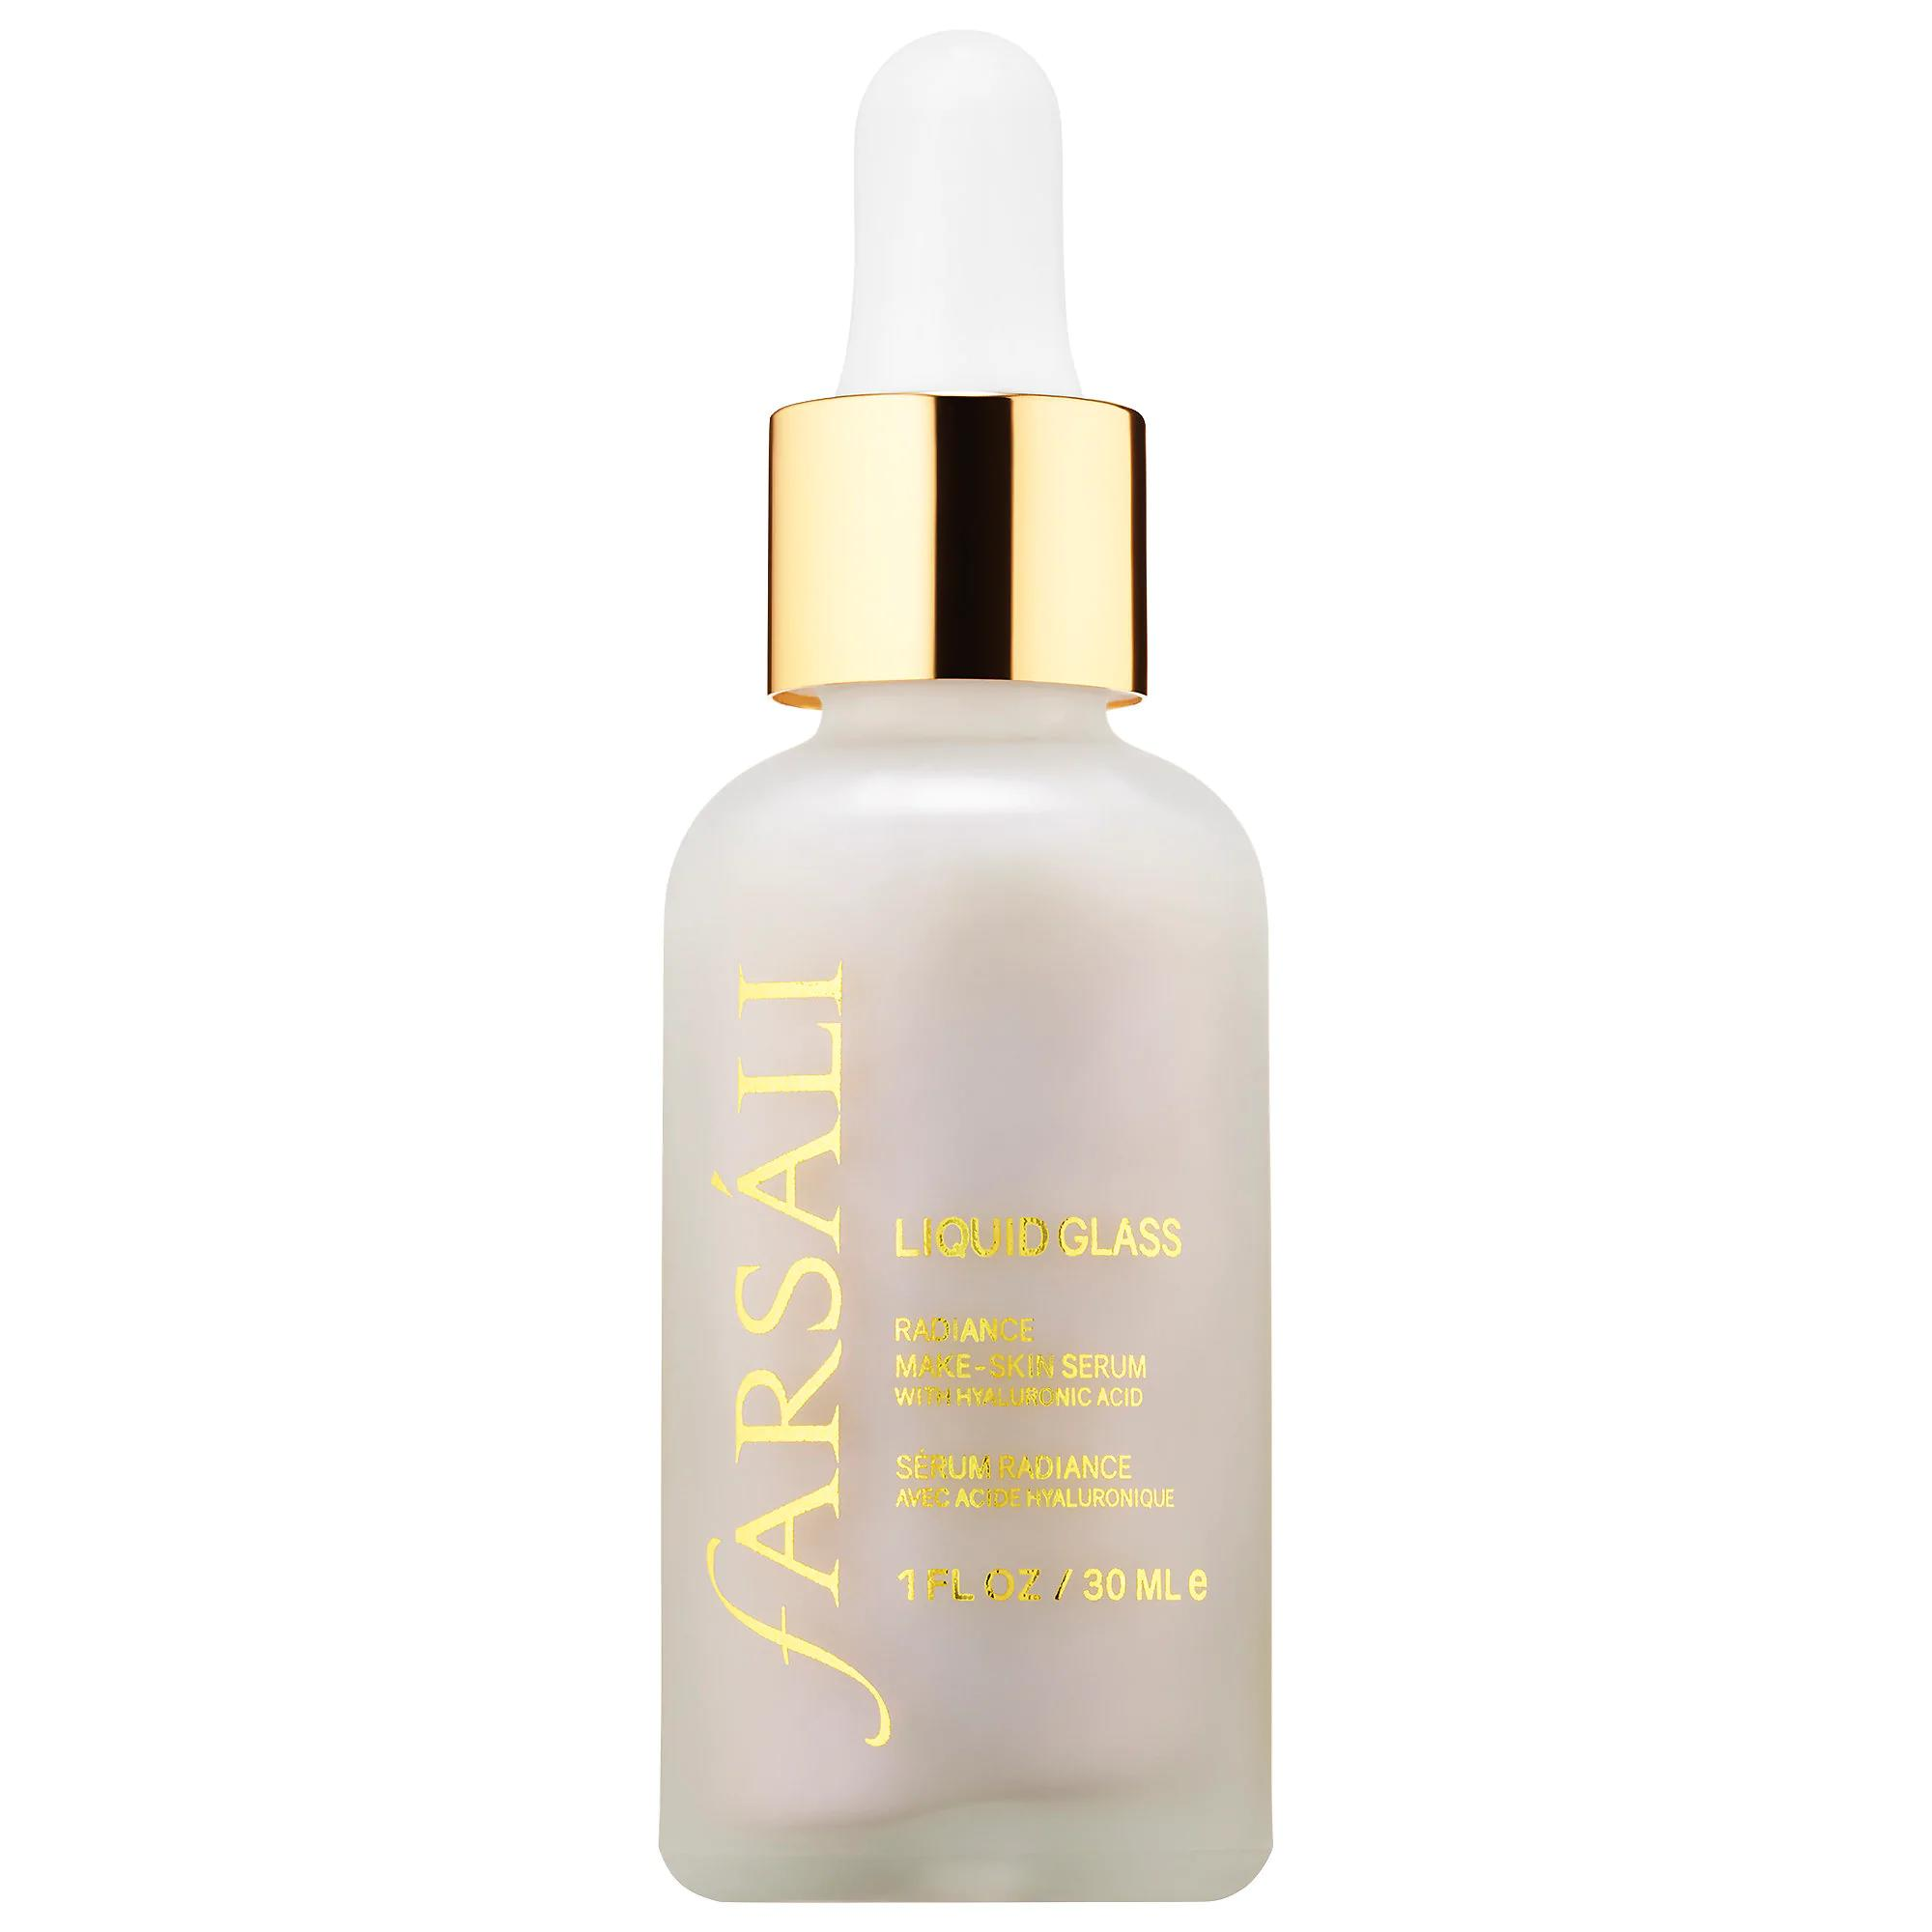 Farsali Liquid Glass Radiance Serum